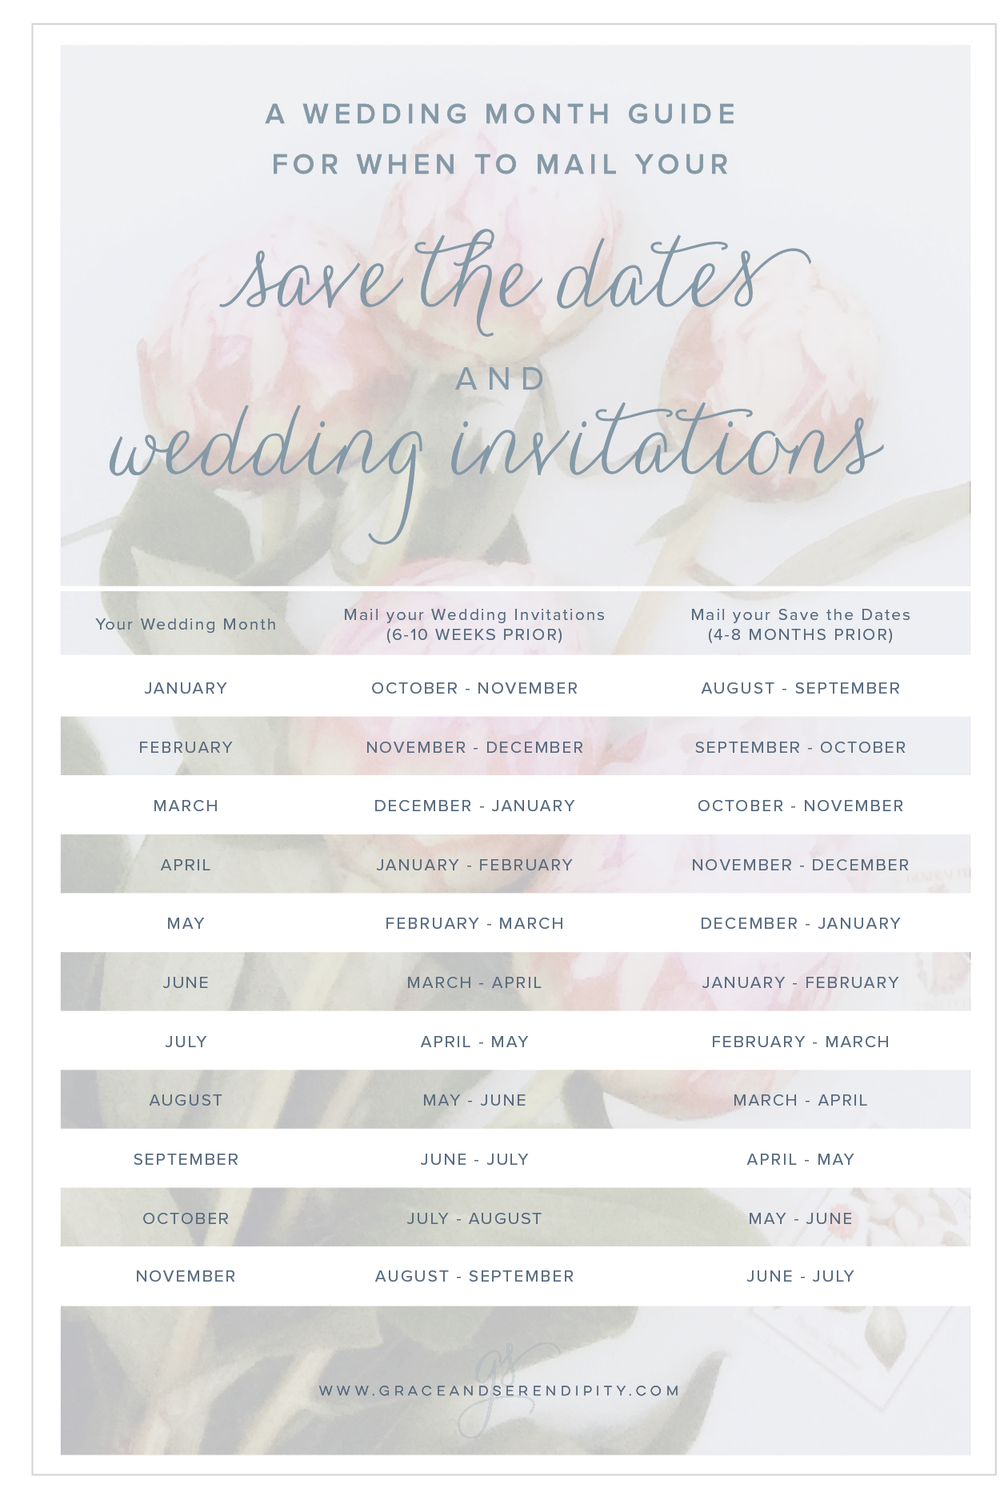 Wedding Tips A Timeline for Custom Save the Dates and Wedding